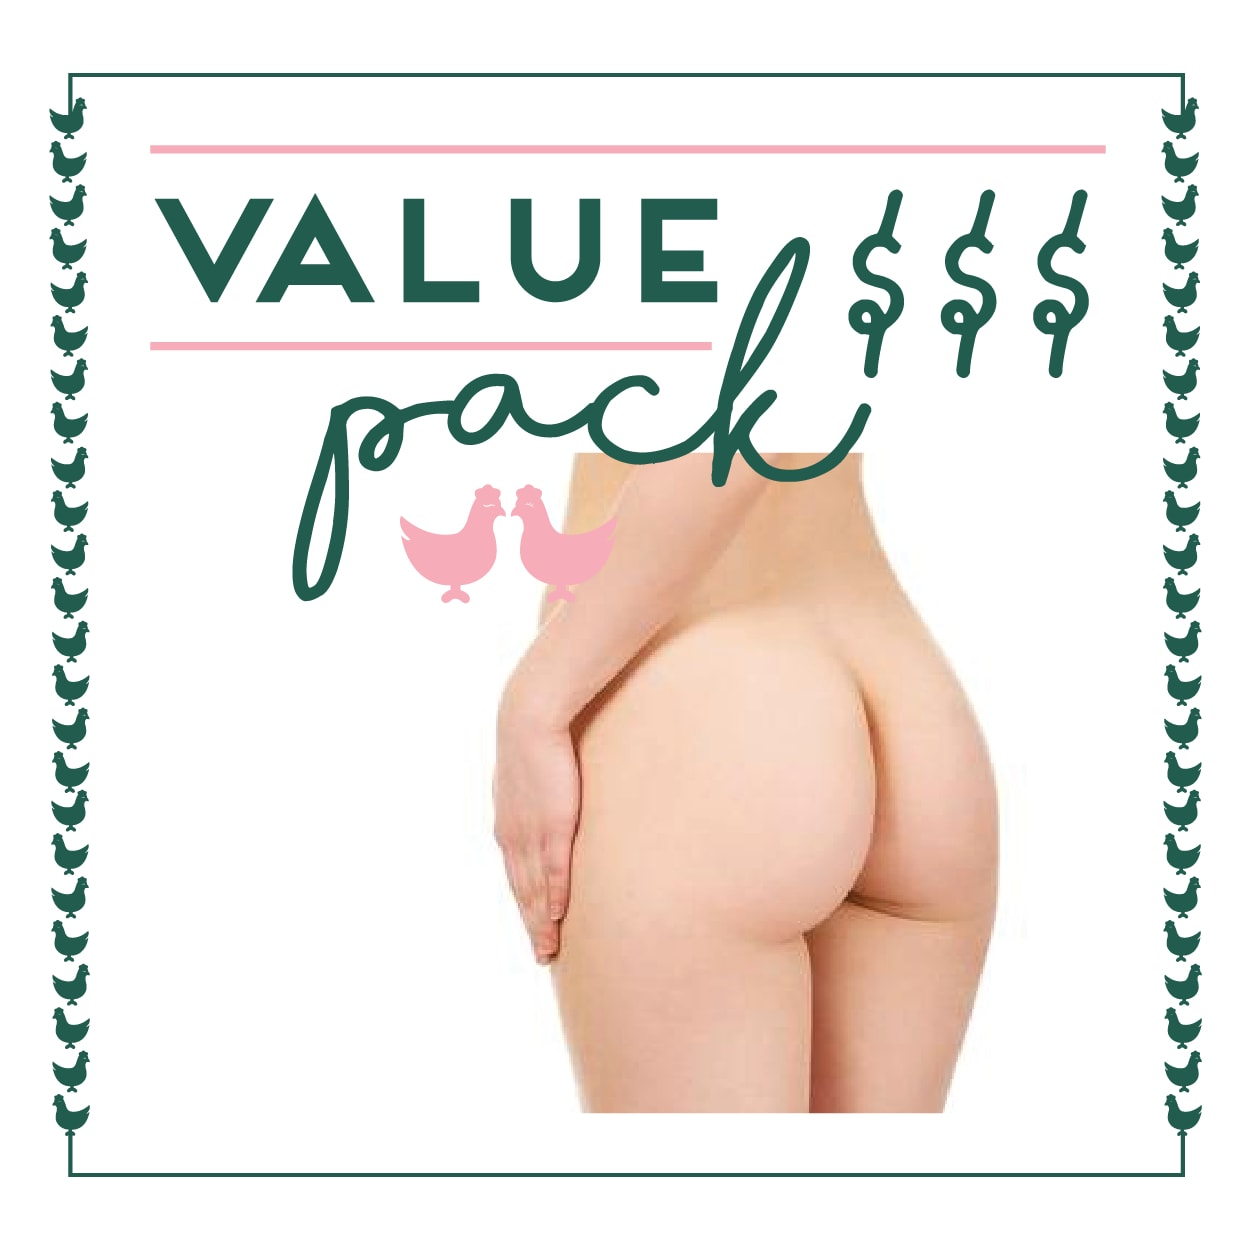 Butt Crack Laser - 6 Session Value Pack